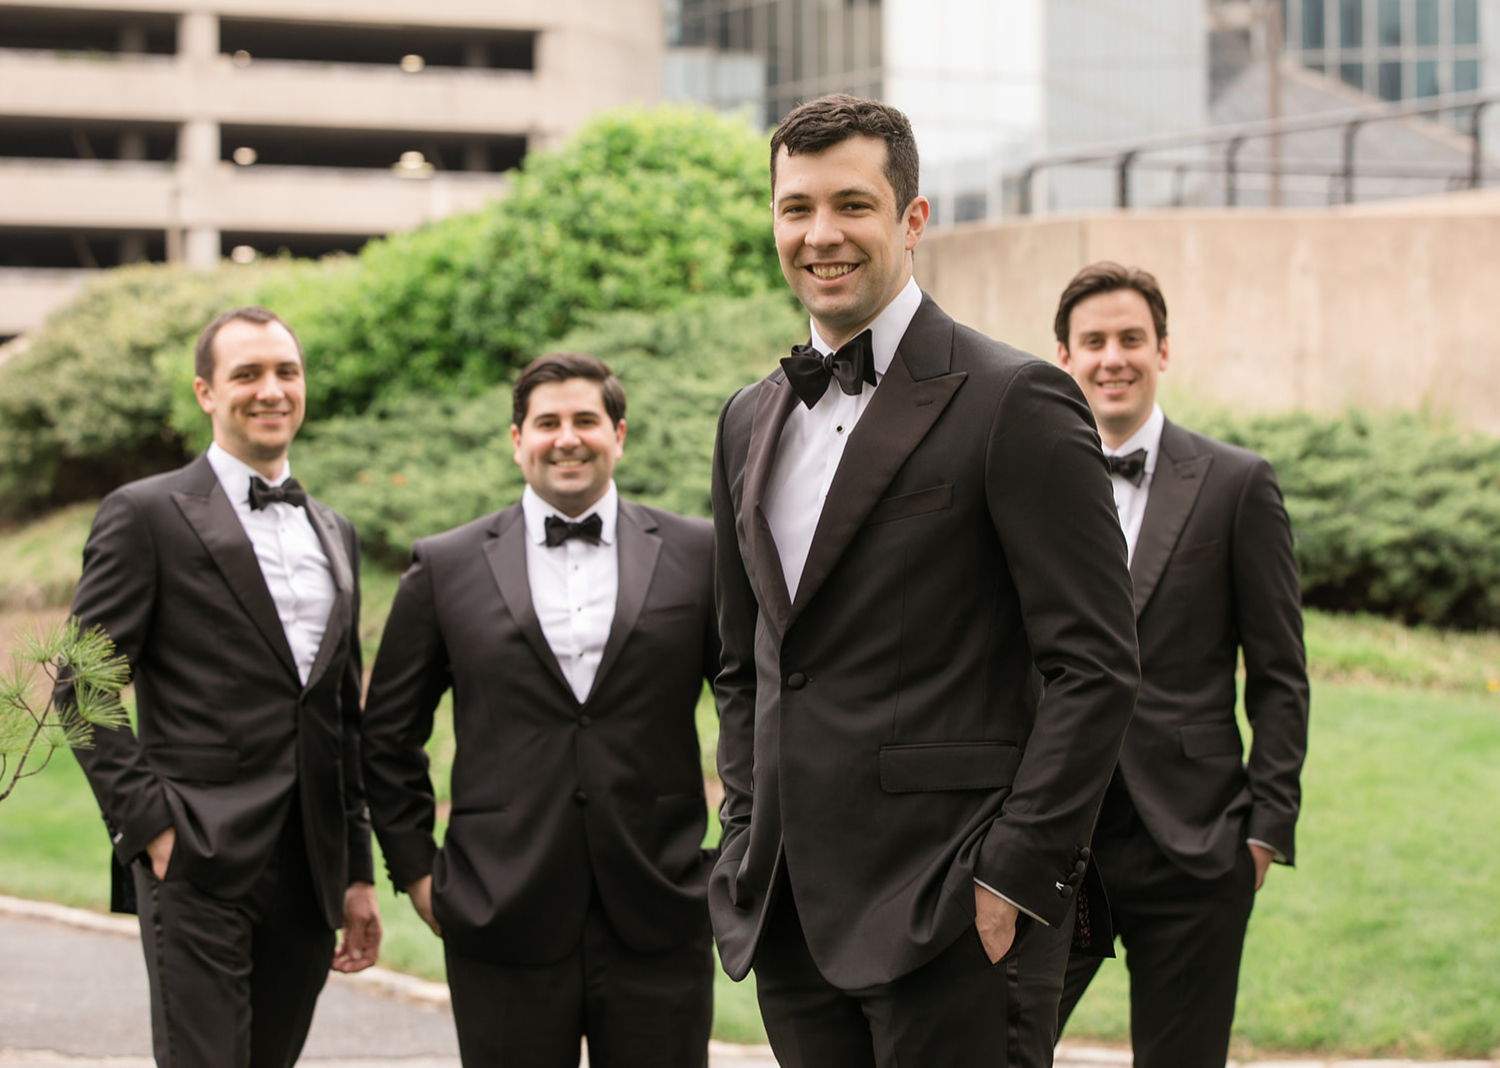 groom stands in front of the groomsmen as the groomsmen stand behind him smiling